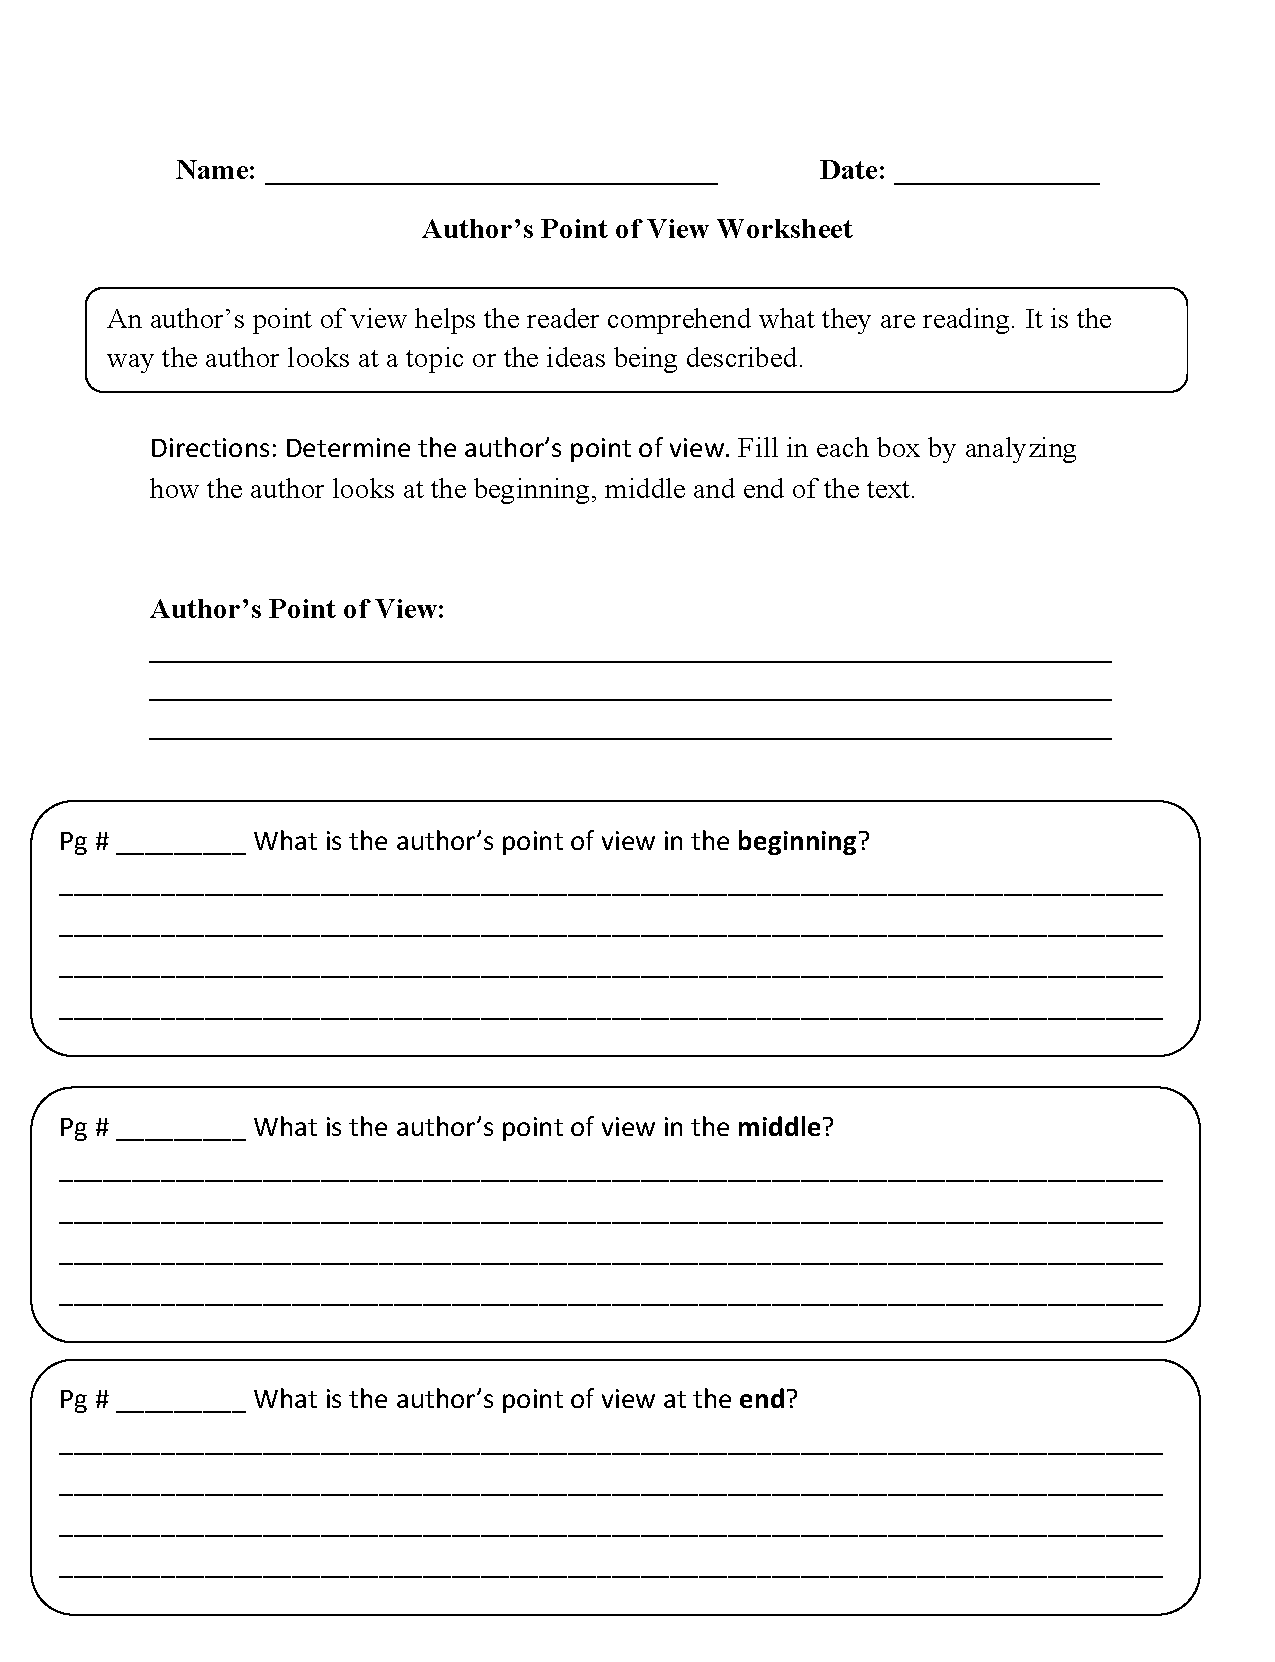 Weirdmailus  Sweet Englishlinxcom  Point Of View Worksheets With Great Point Of View Worksheets With Attractive Create A Math Worksheet Also Plane Shapes Worksheets In Addition Free Online Math Worksheets And Division Worksheets For Th Grade As Well As Sf  Worksheet Additionally Free Word Search Worksheets From Englishlinxcom With Weirdmailus  Great Englishlinxcom  Point Of View Worksheets With Attractive Point Of View Worksheets And Sweet Create A Math Worksheet Also Plane Shapes Worksheets In Addition Free Online Math Worksheets From Englishlinxcom